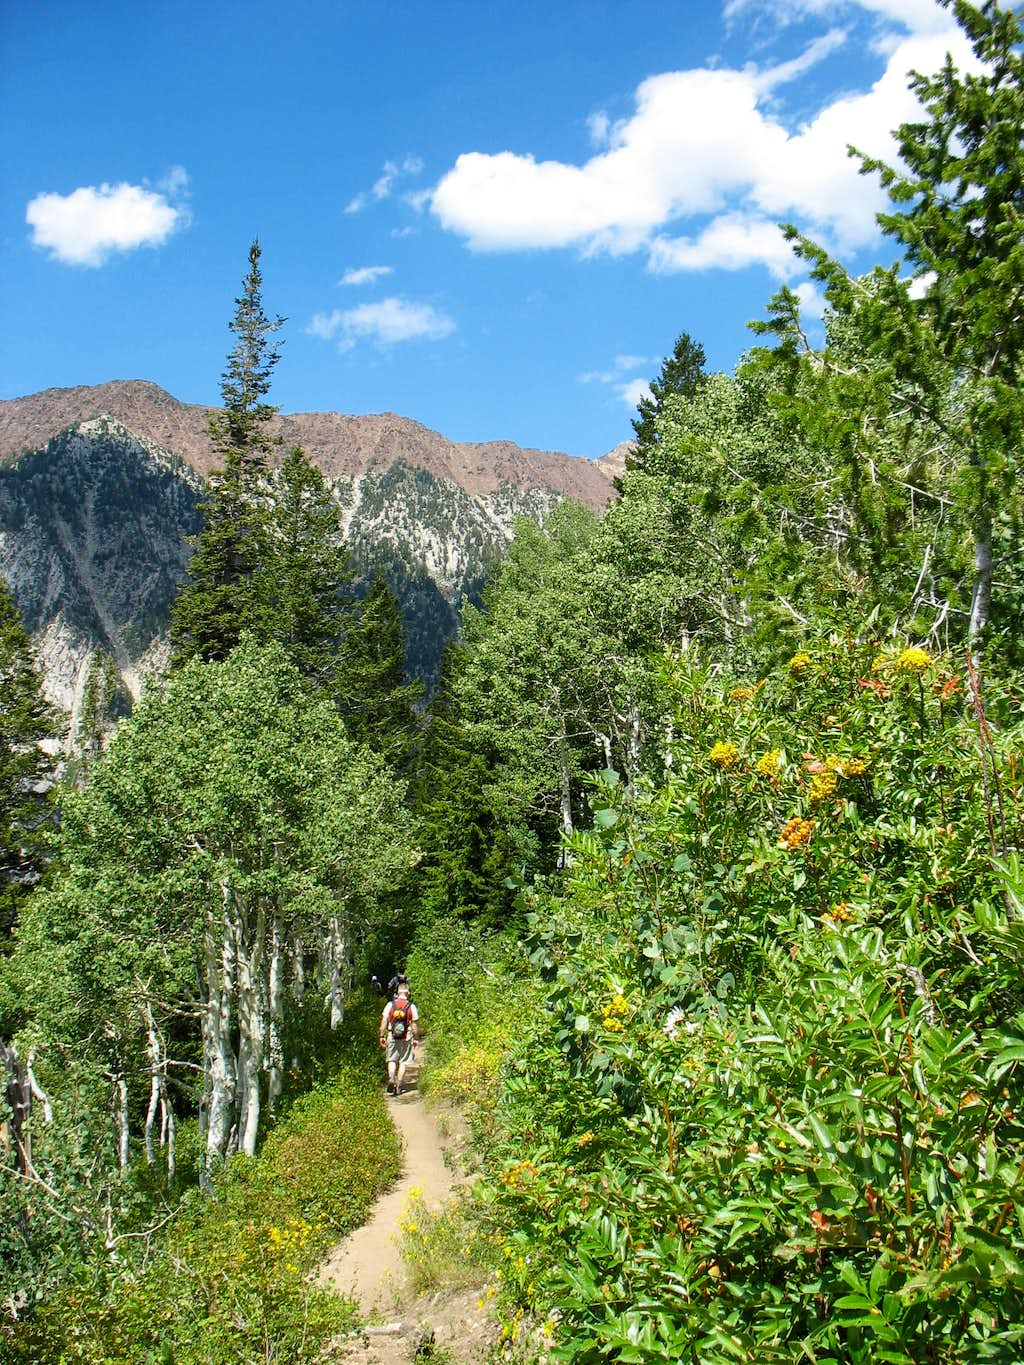 Hiking back down the Red Pine Trail